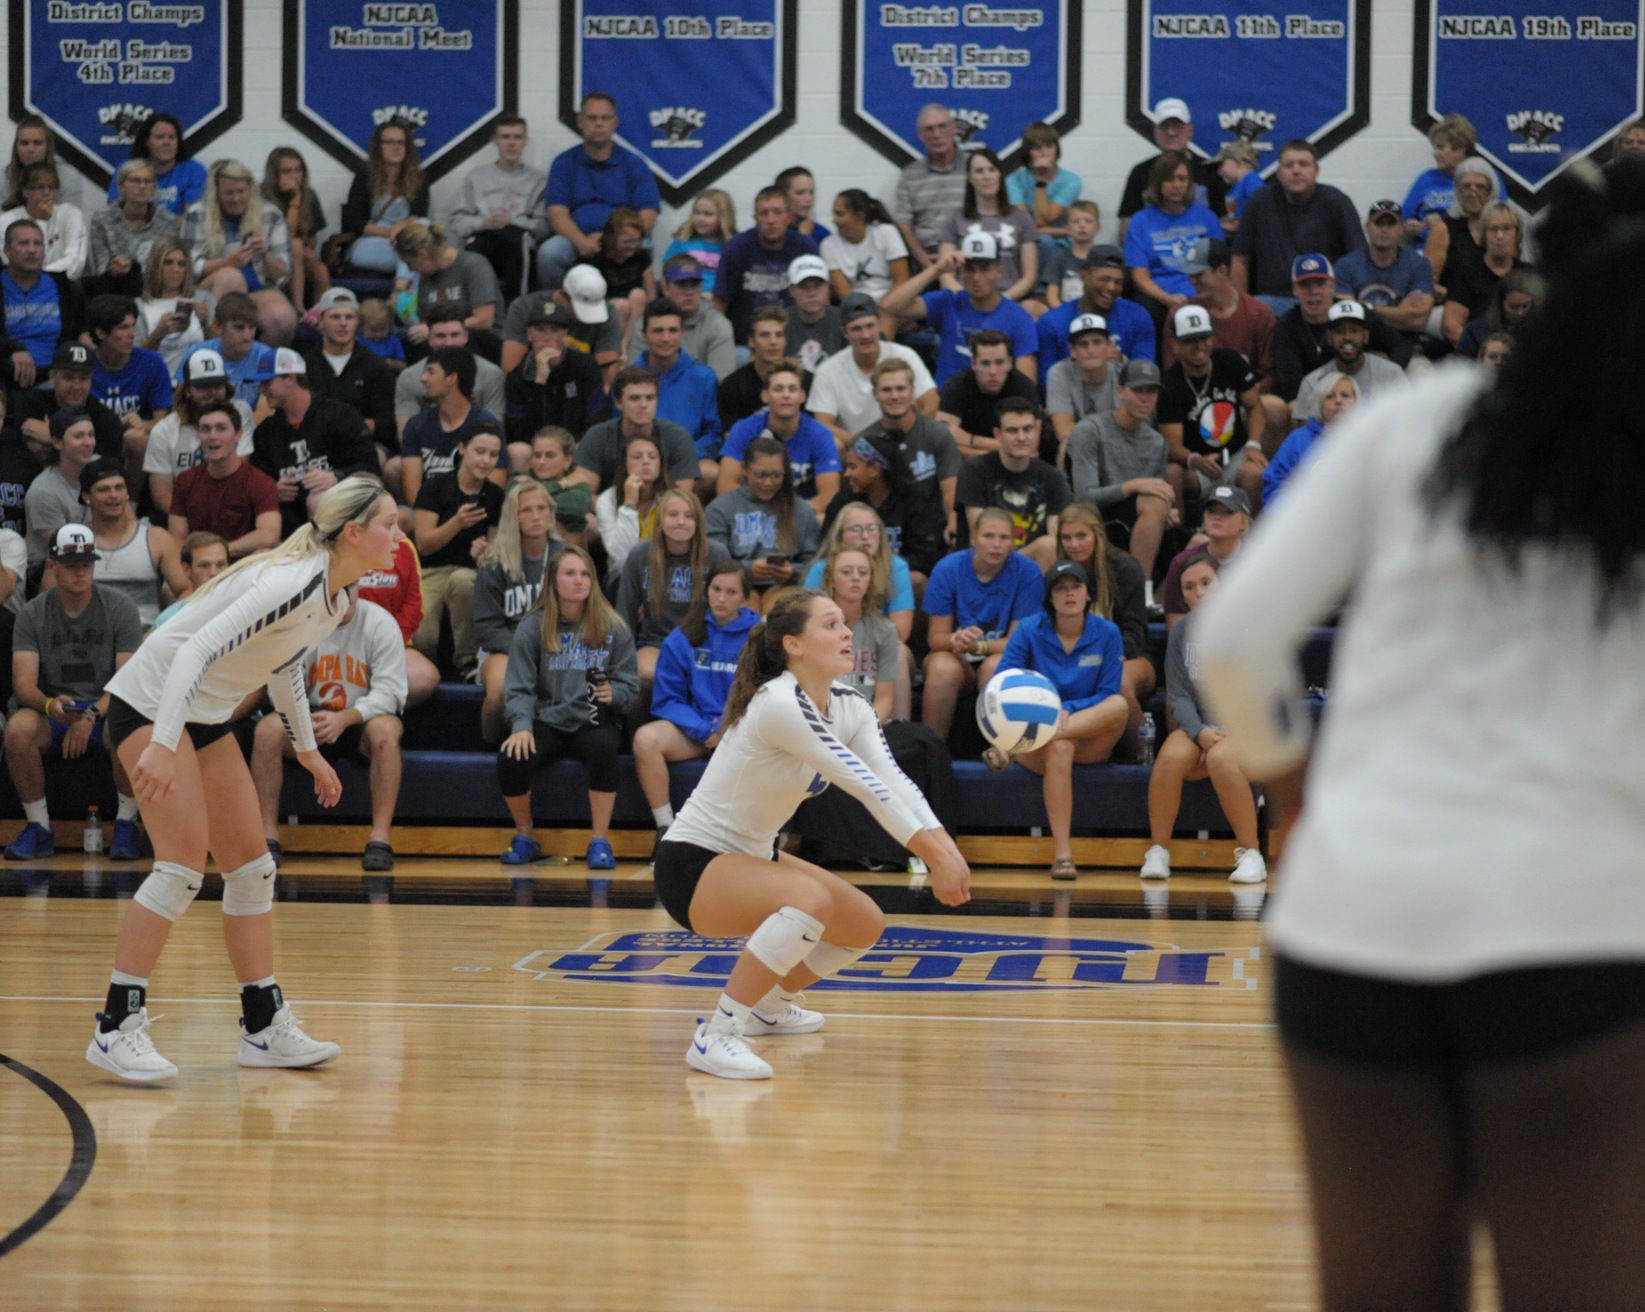 DMACC volleyball team splits four matches in Johnson County Volleyball Challenge